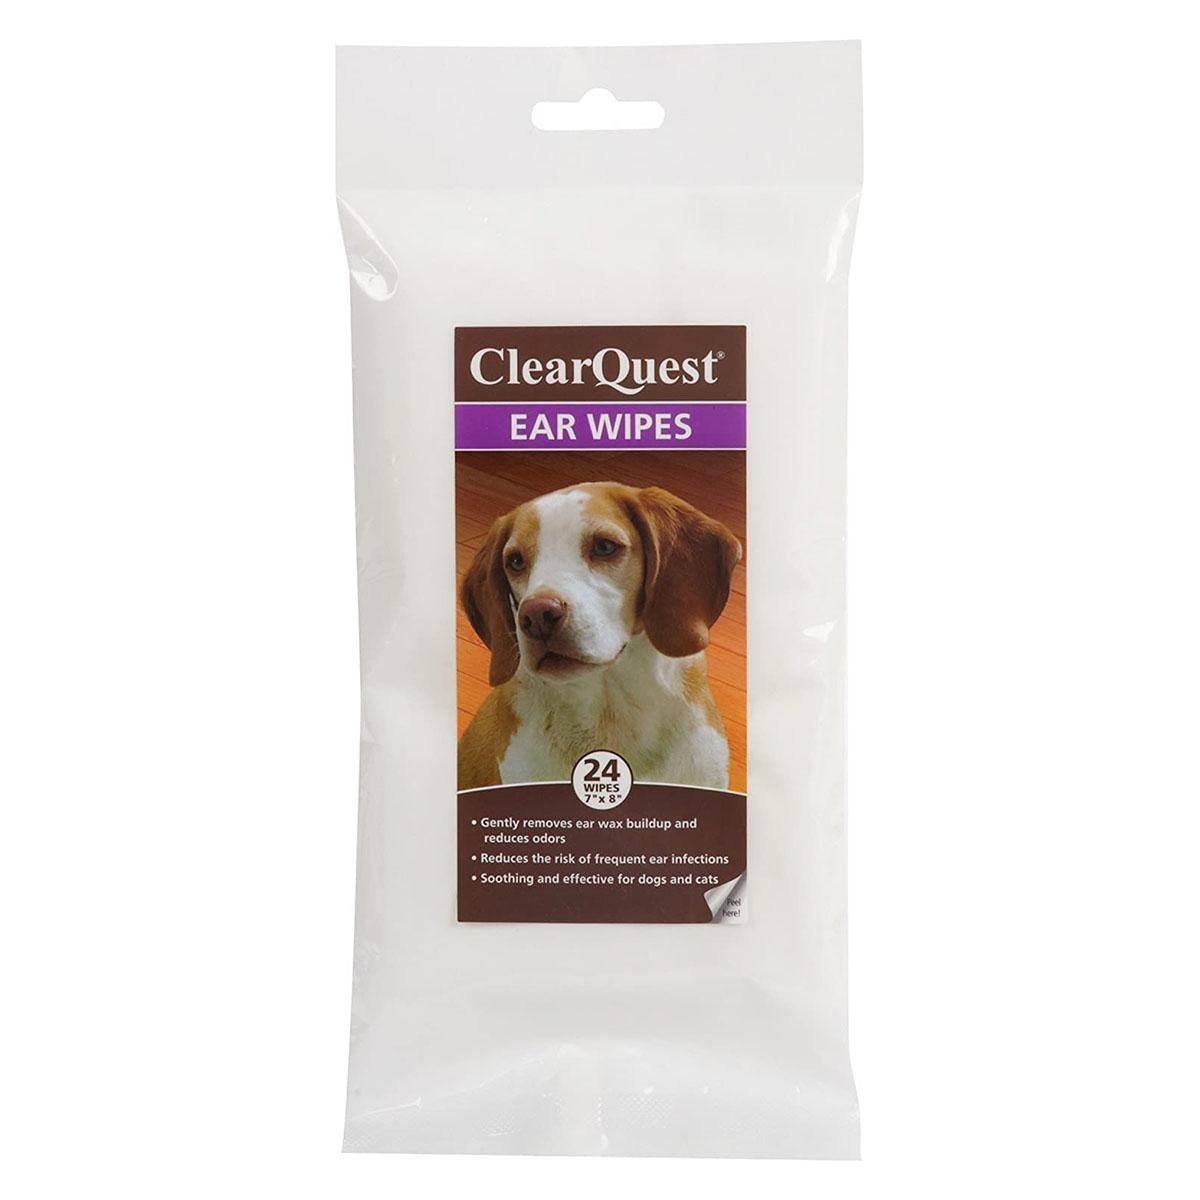 ClearQuest Dog and Cat Ear Wipes